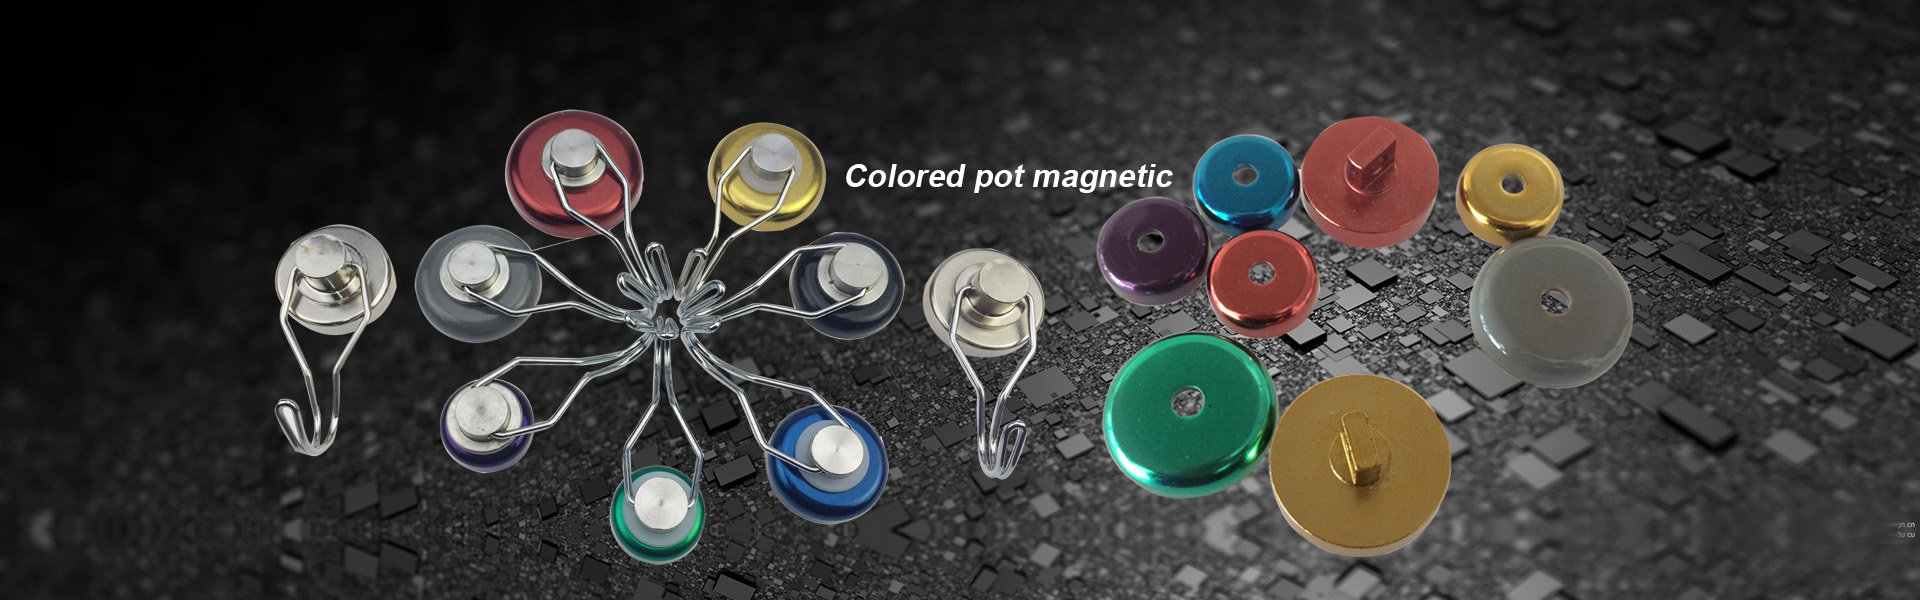 Colored Pot magnetic